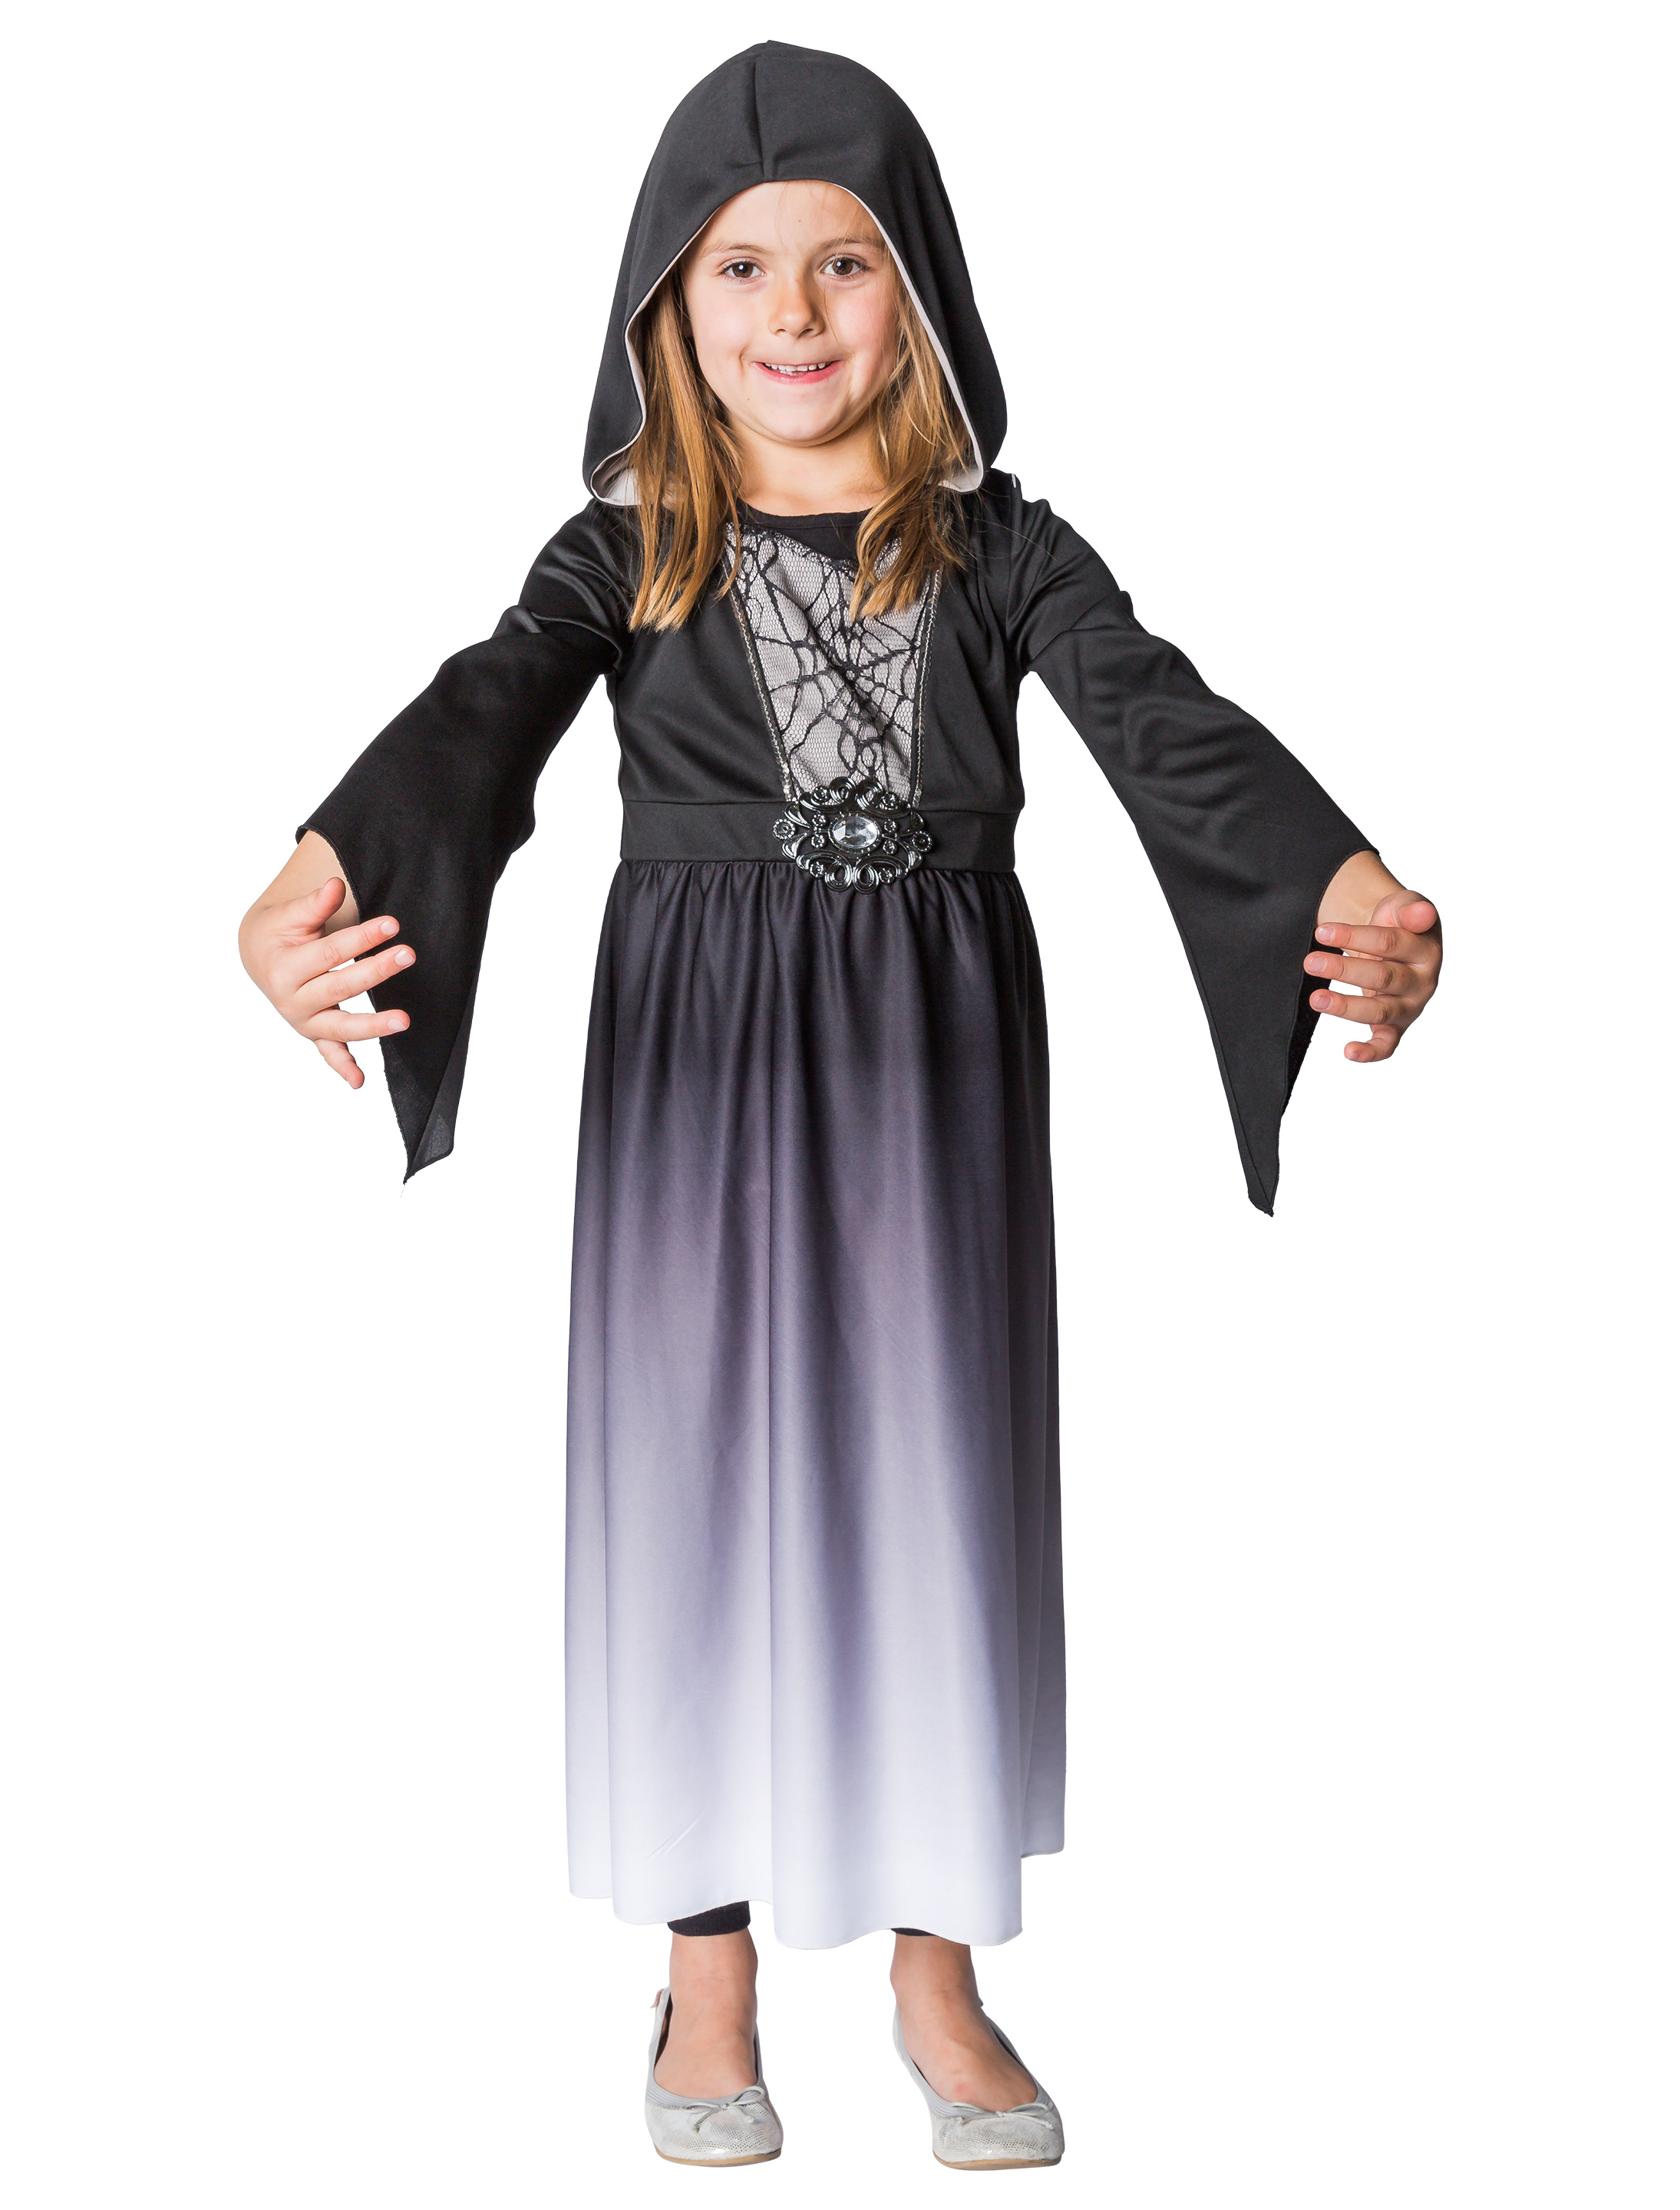 Kleid Halloween mit Kapuze Kinder 116/128